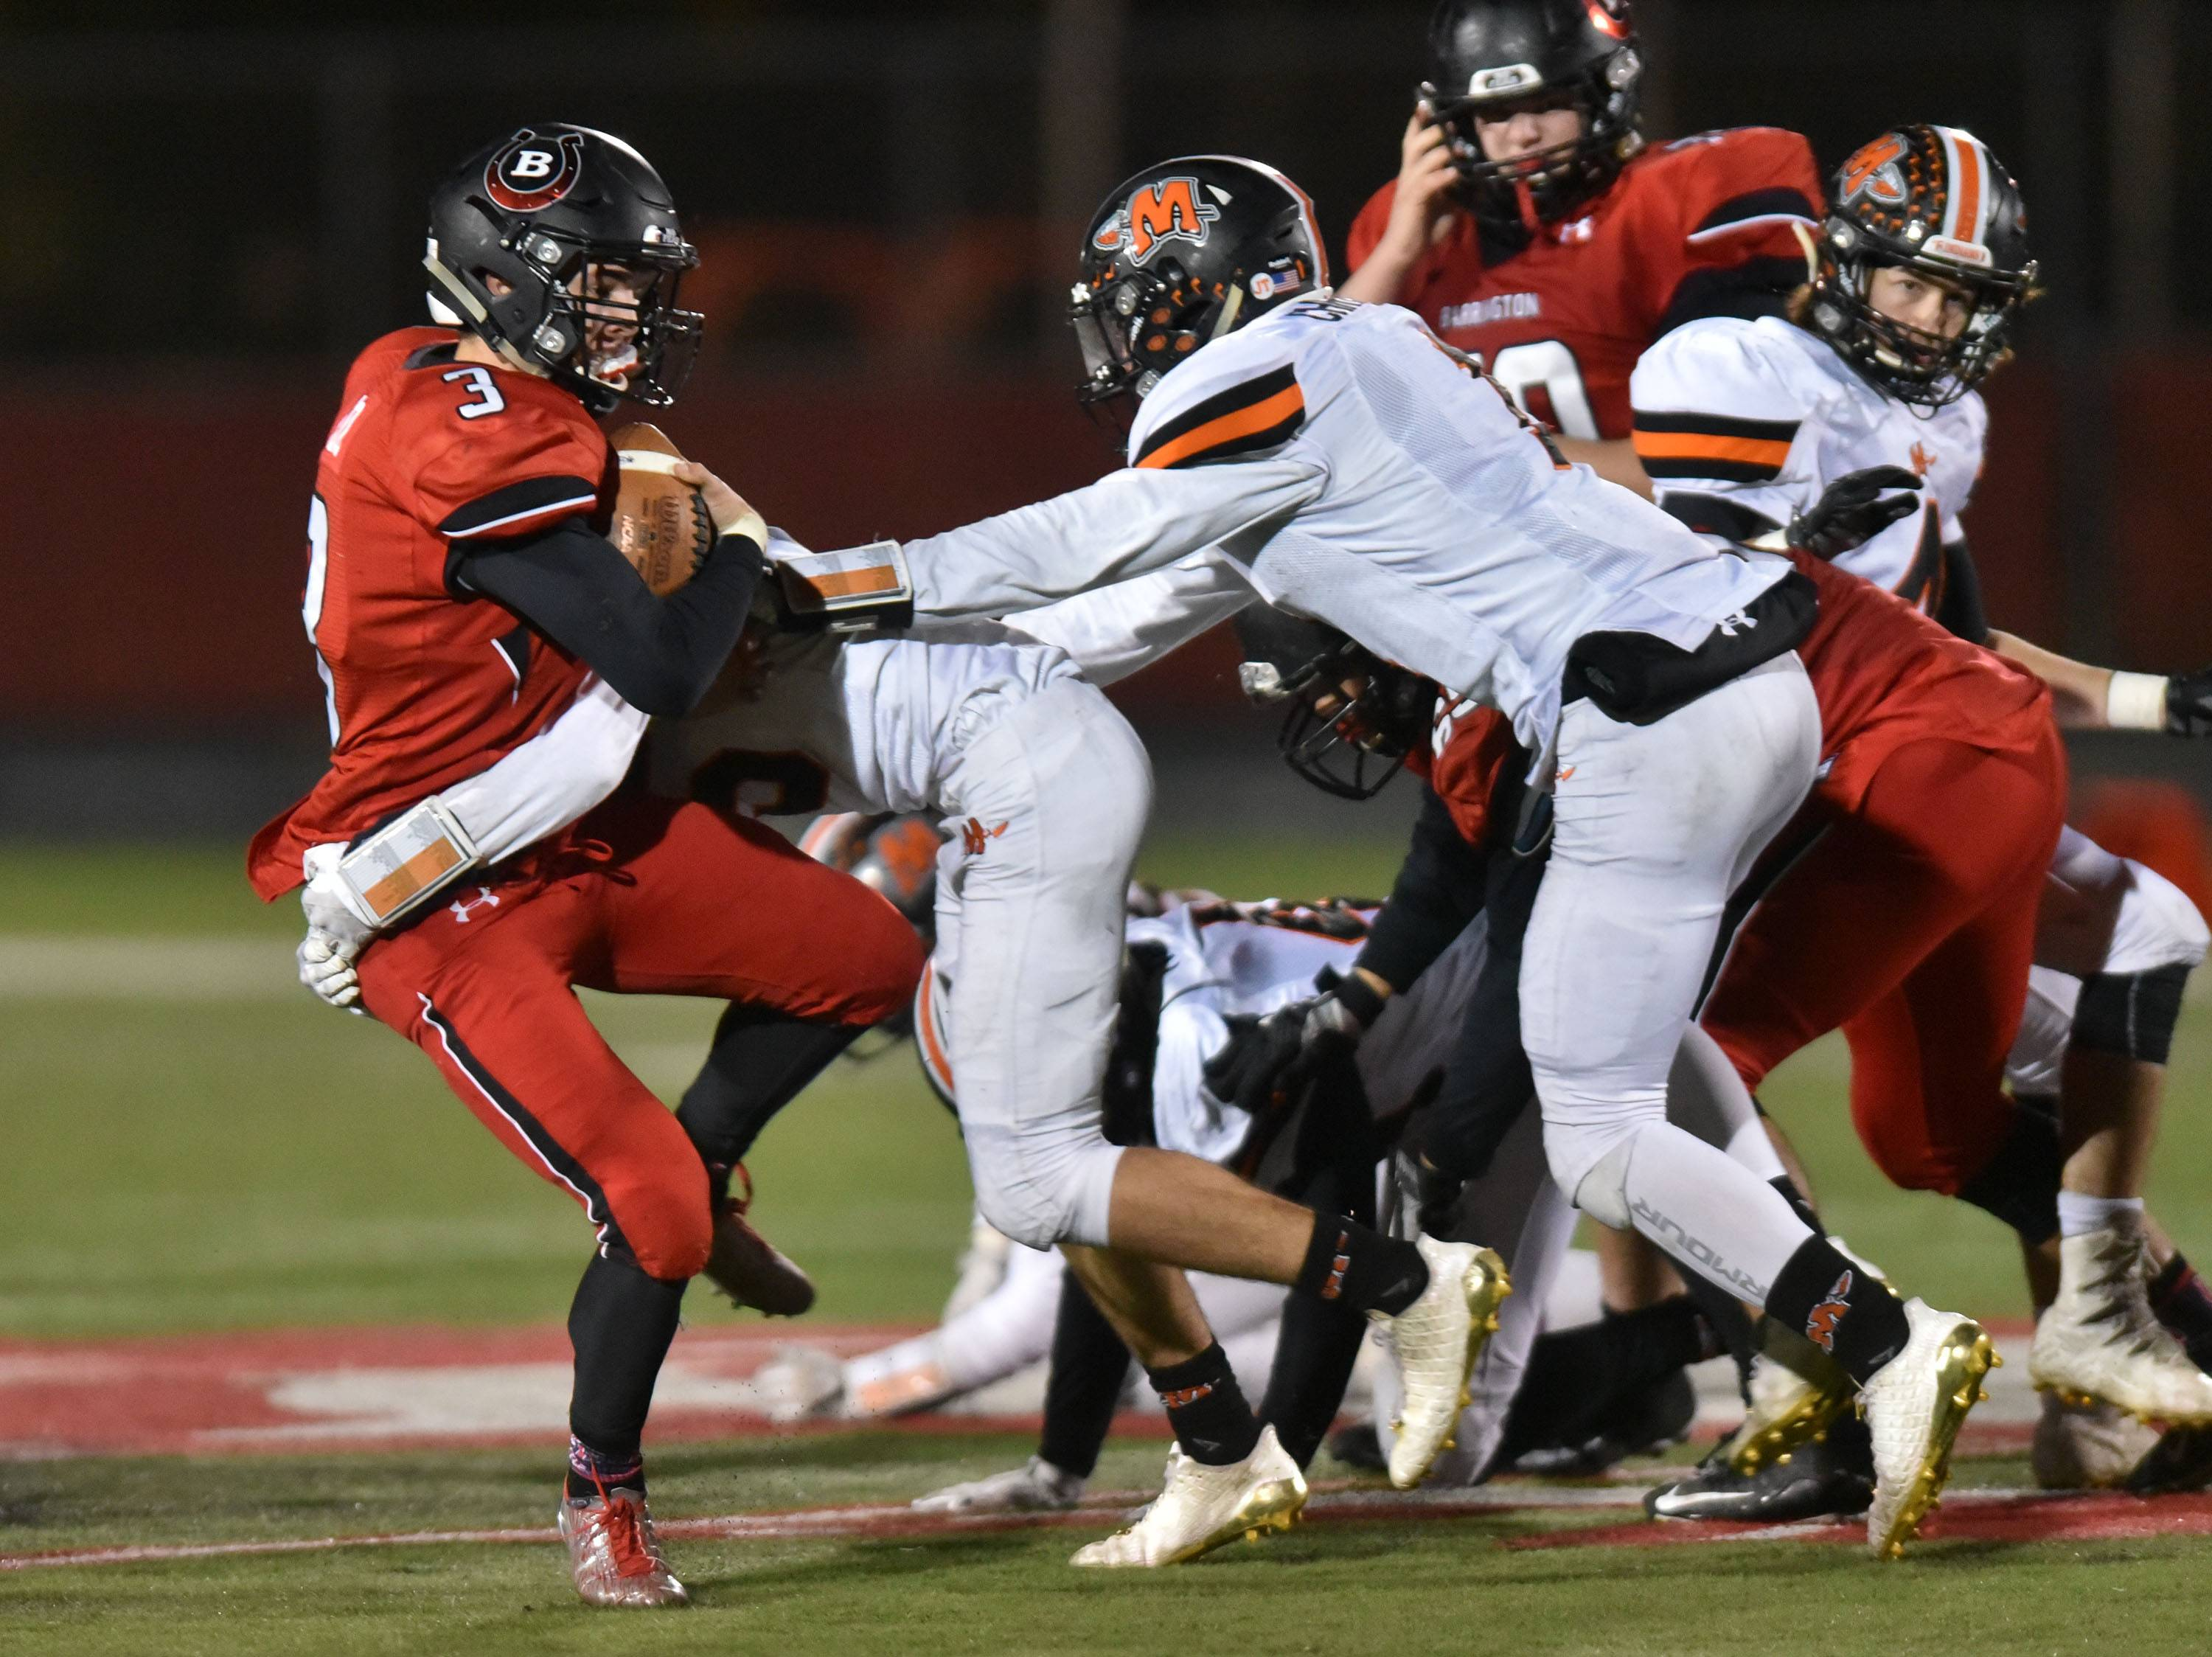 Barrington's Ray Niro is stopped by Minooka's Tyler Haase on Friday in the Class 8A playoffs at Barrington Community Stadium.